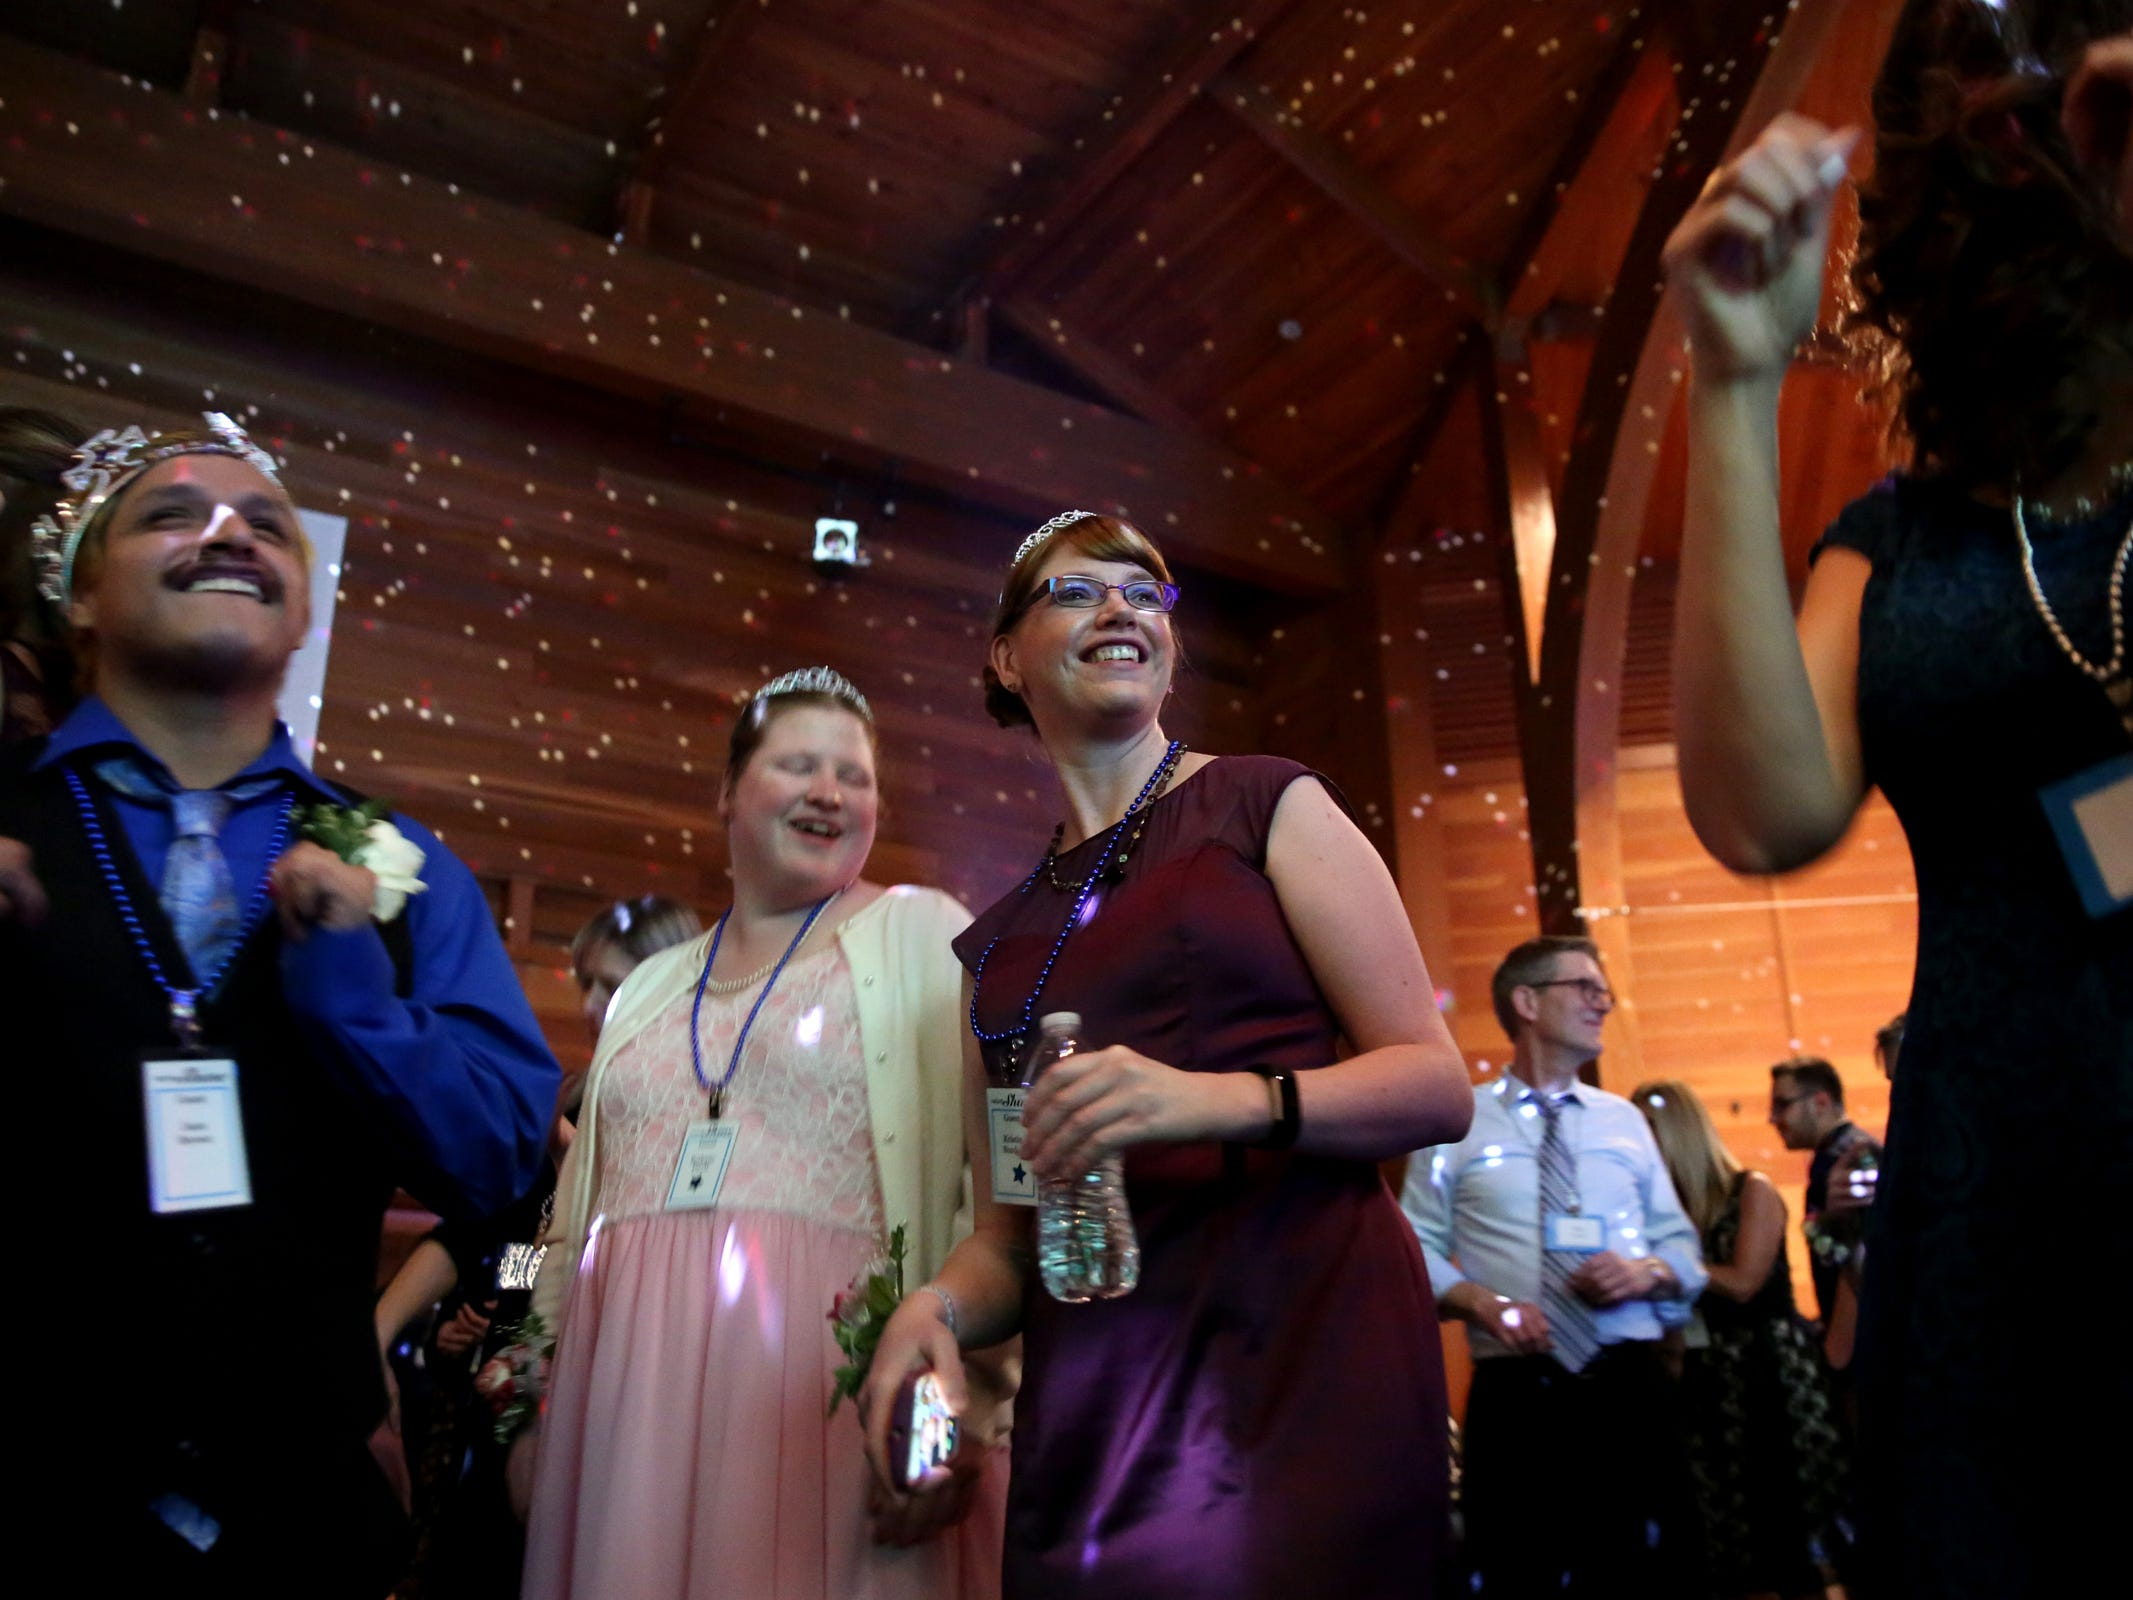 Kris Burden, center, 36, of Salem, dances with friends at Night to Shine, a prom night experience for people with special needs, at Salem Alliance Church on Friday, Feb. 8, 2019.